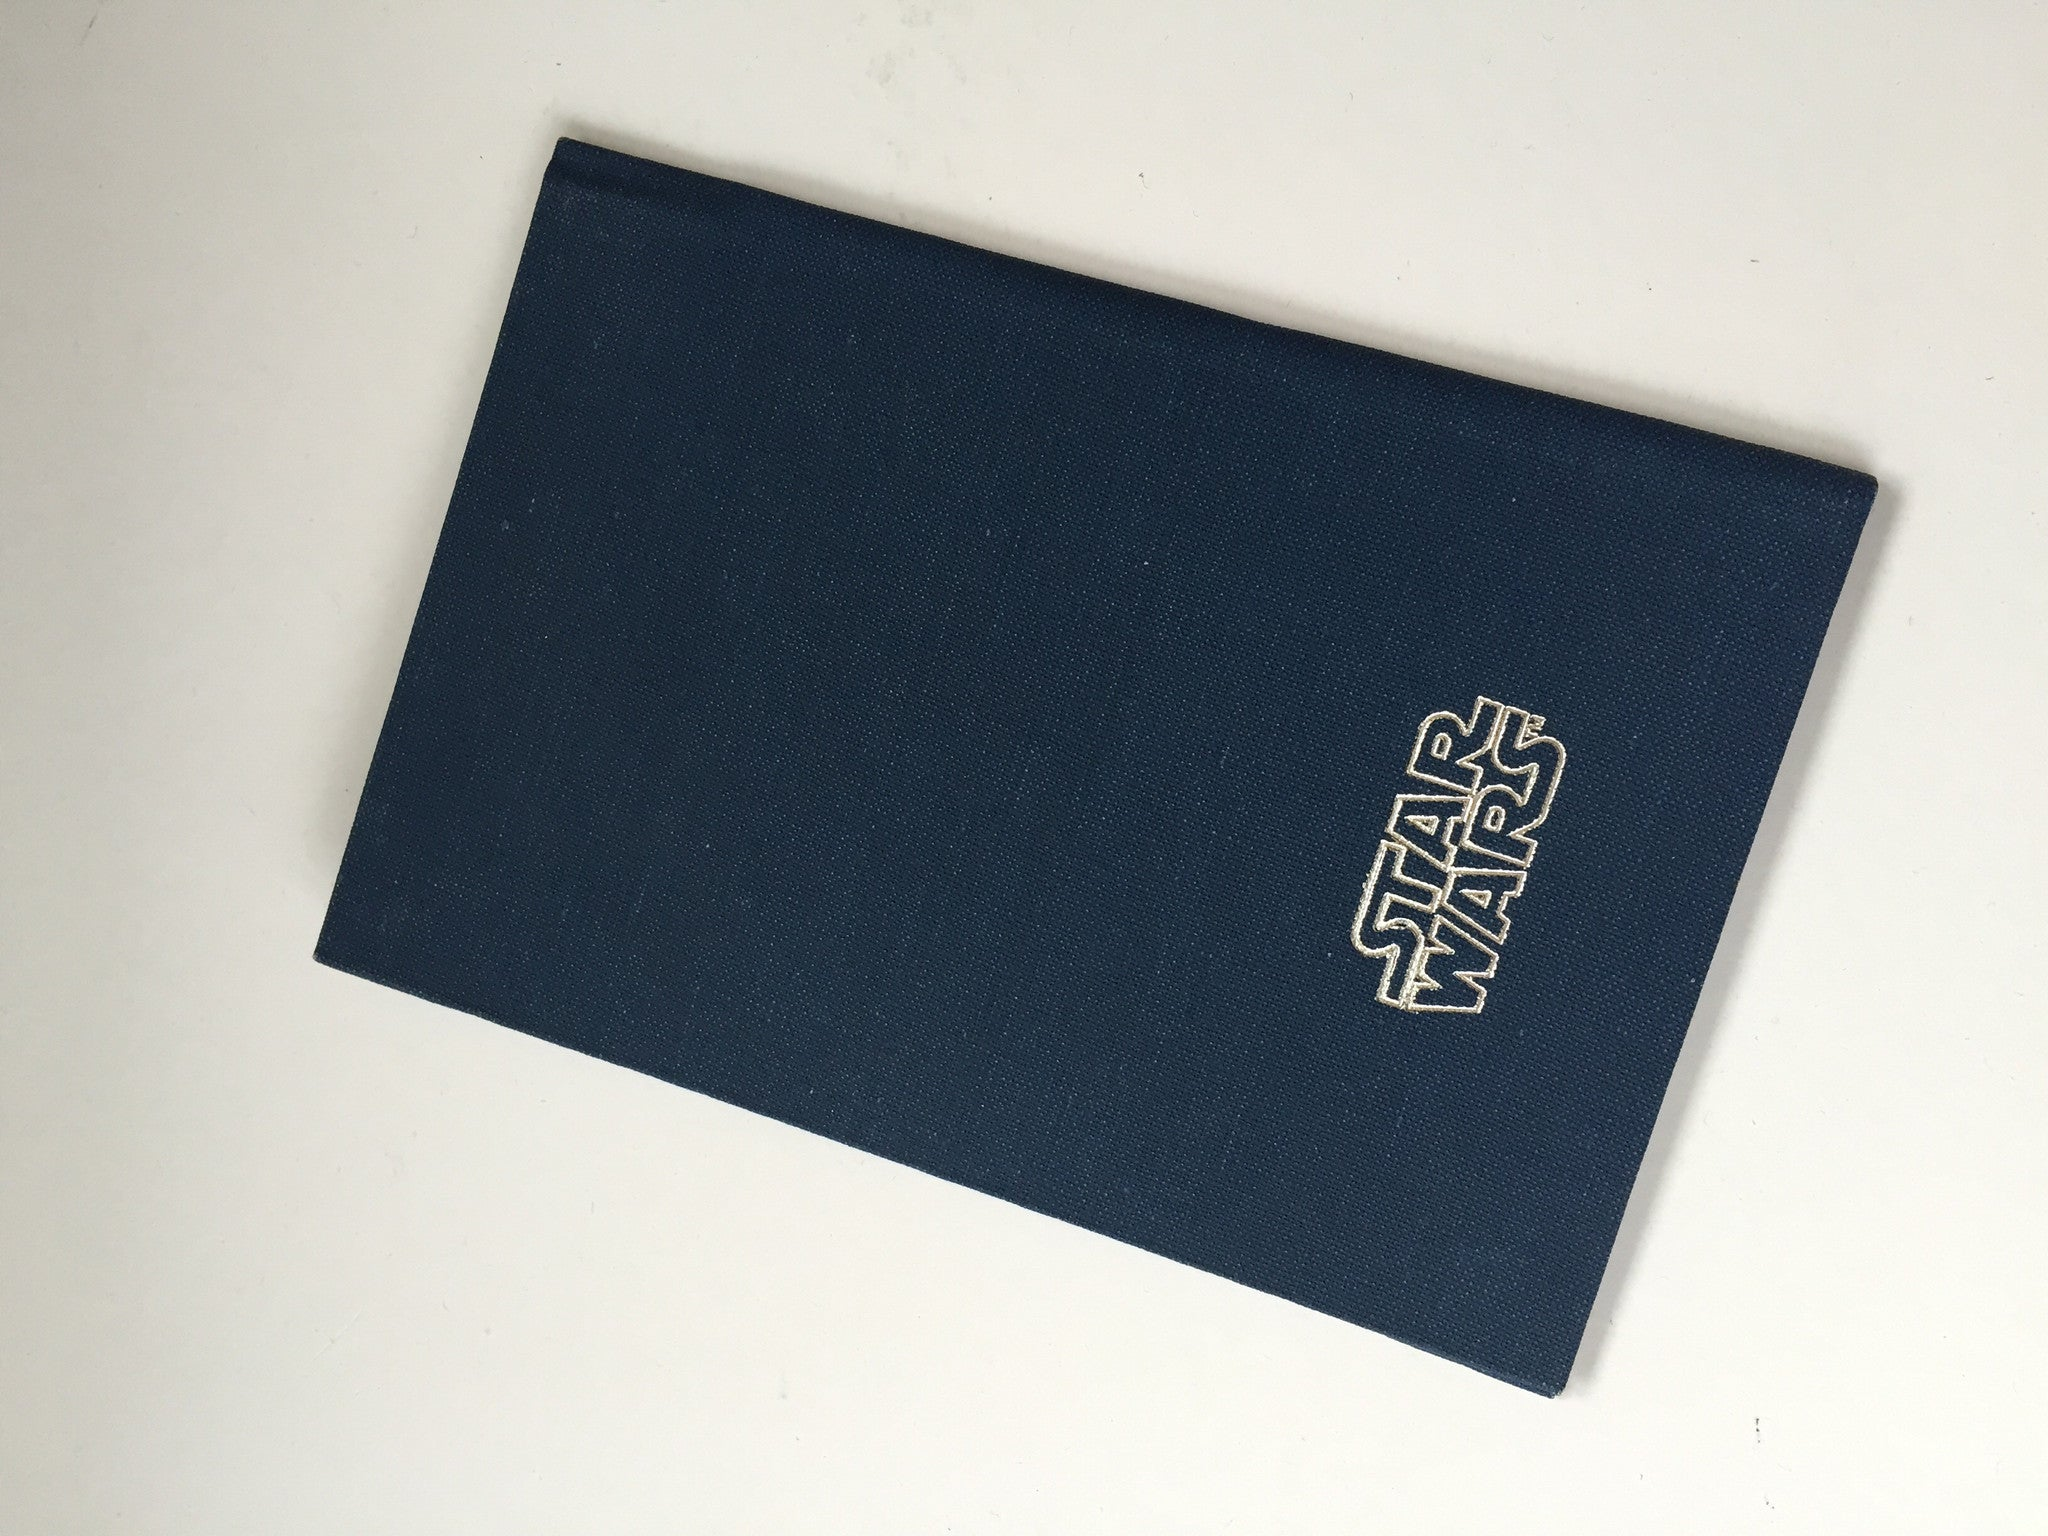 Star Wars: The Empire Strikes Back (1980) - An intergalactic Passport (SOLD)